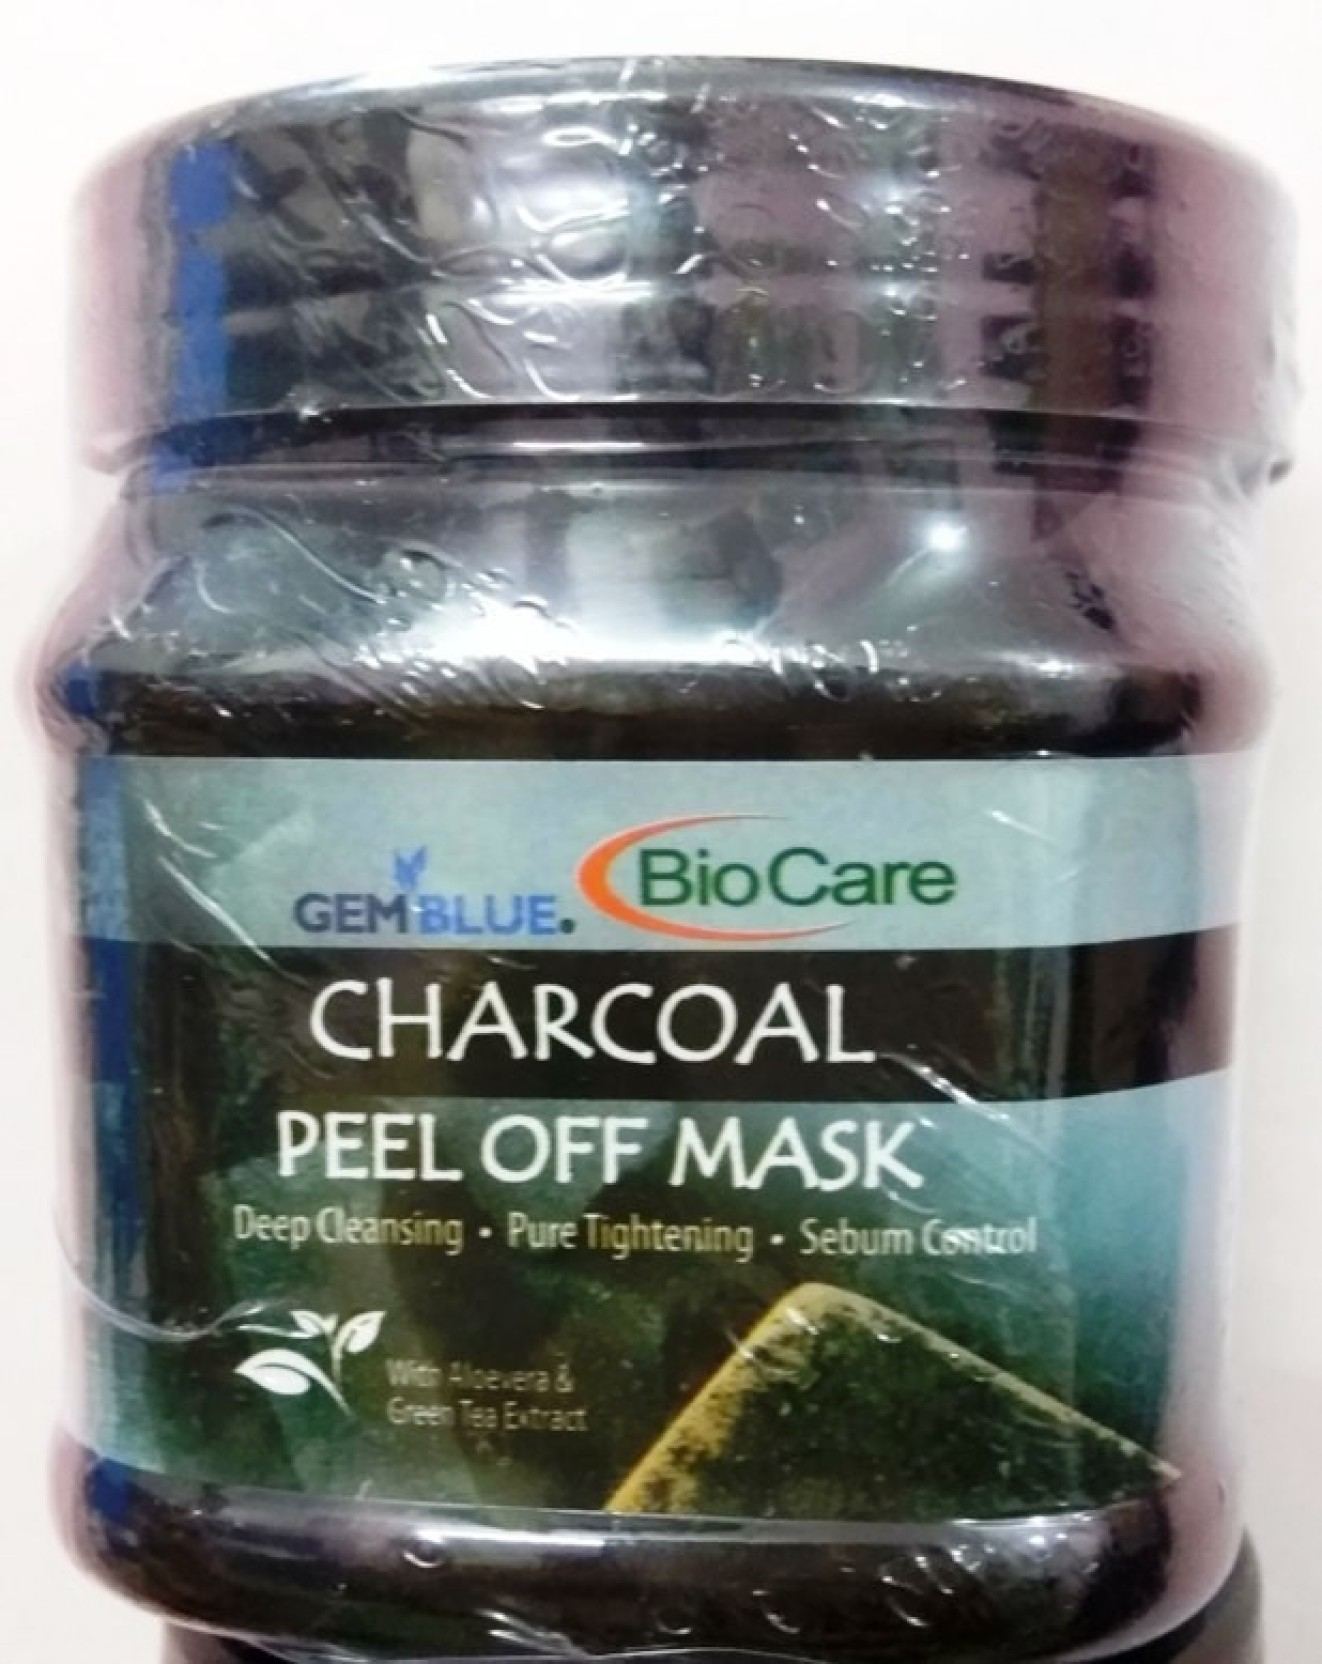 Biocare Charcoal Peel Off Mask Price In India Buy Jellys Pure Face Power Soap Add To Cart